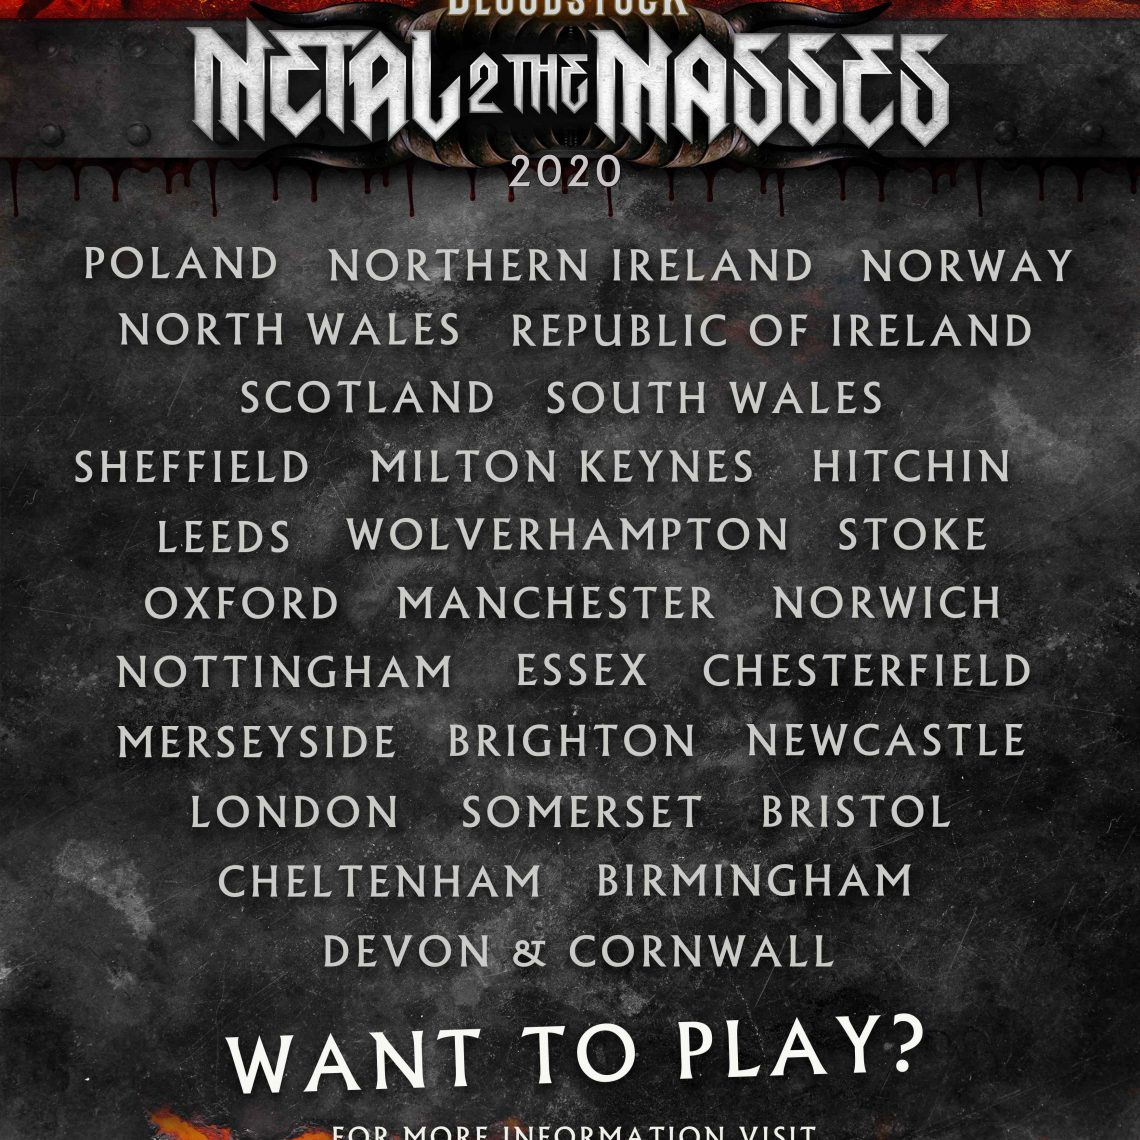 BLOODSTOCK Festival launches 2020's regional Metal 2 The Masses Programme